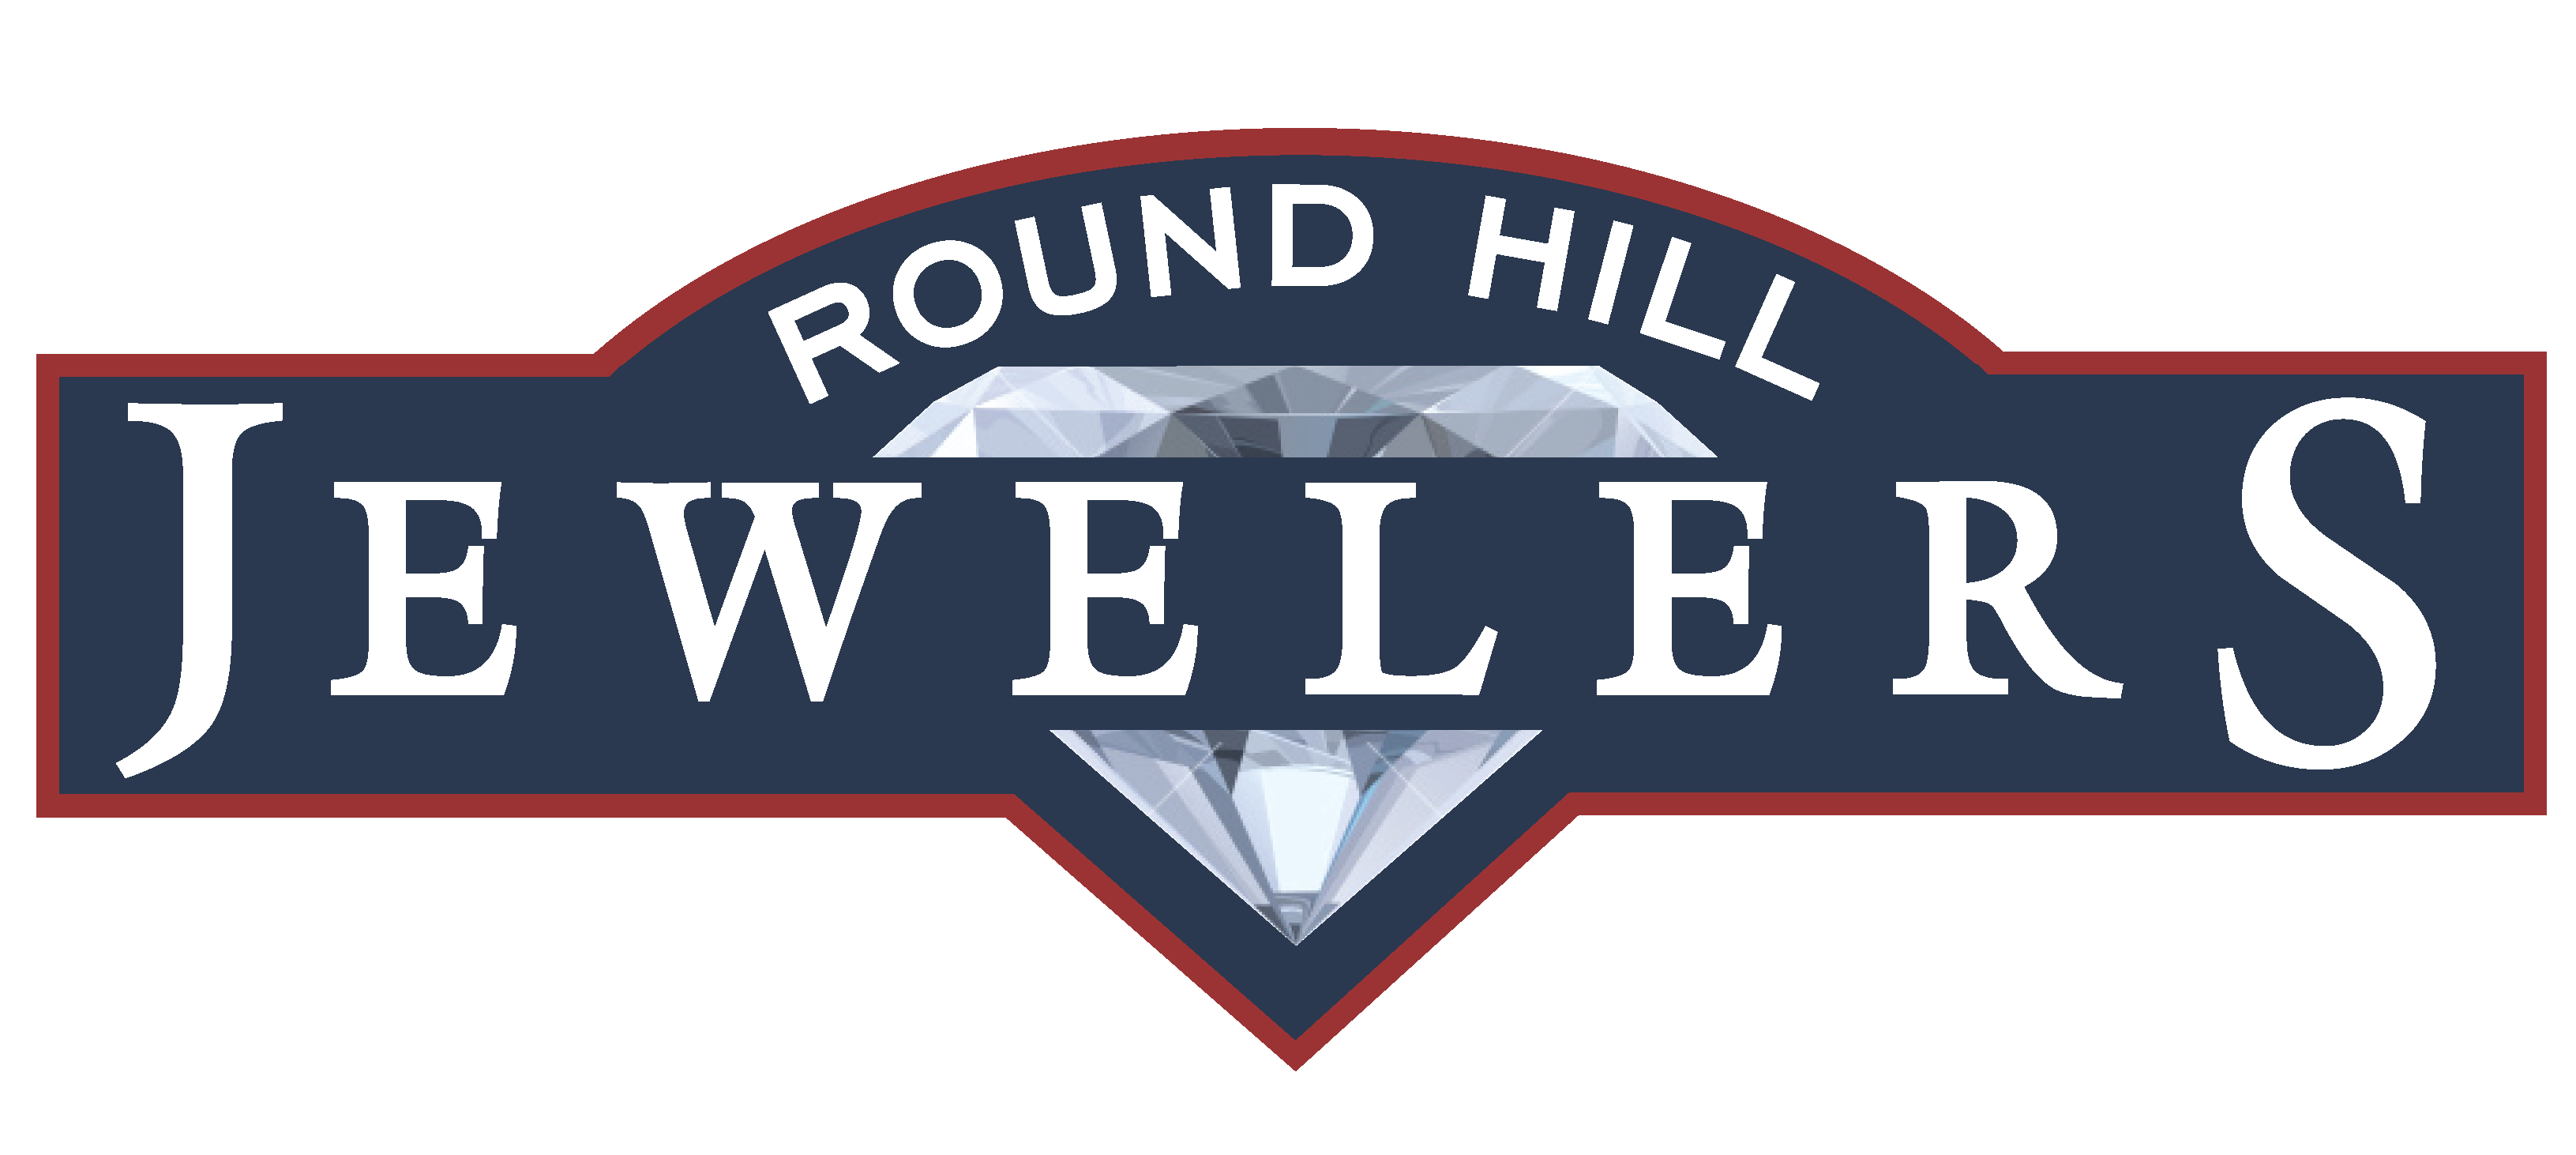 Round Hill Jewelers - Jewelry Store Serving Tahoe, Reno, Carson City and Surrounding Cities